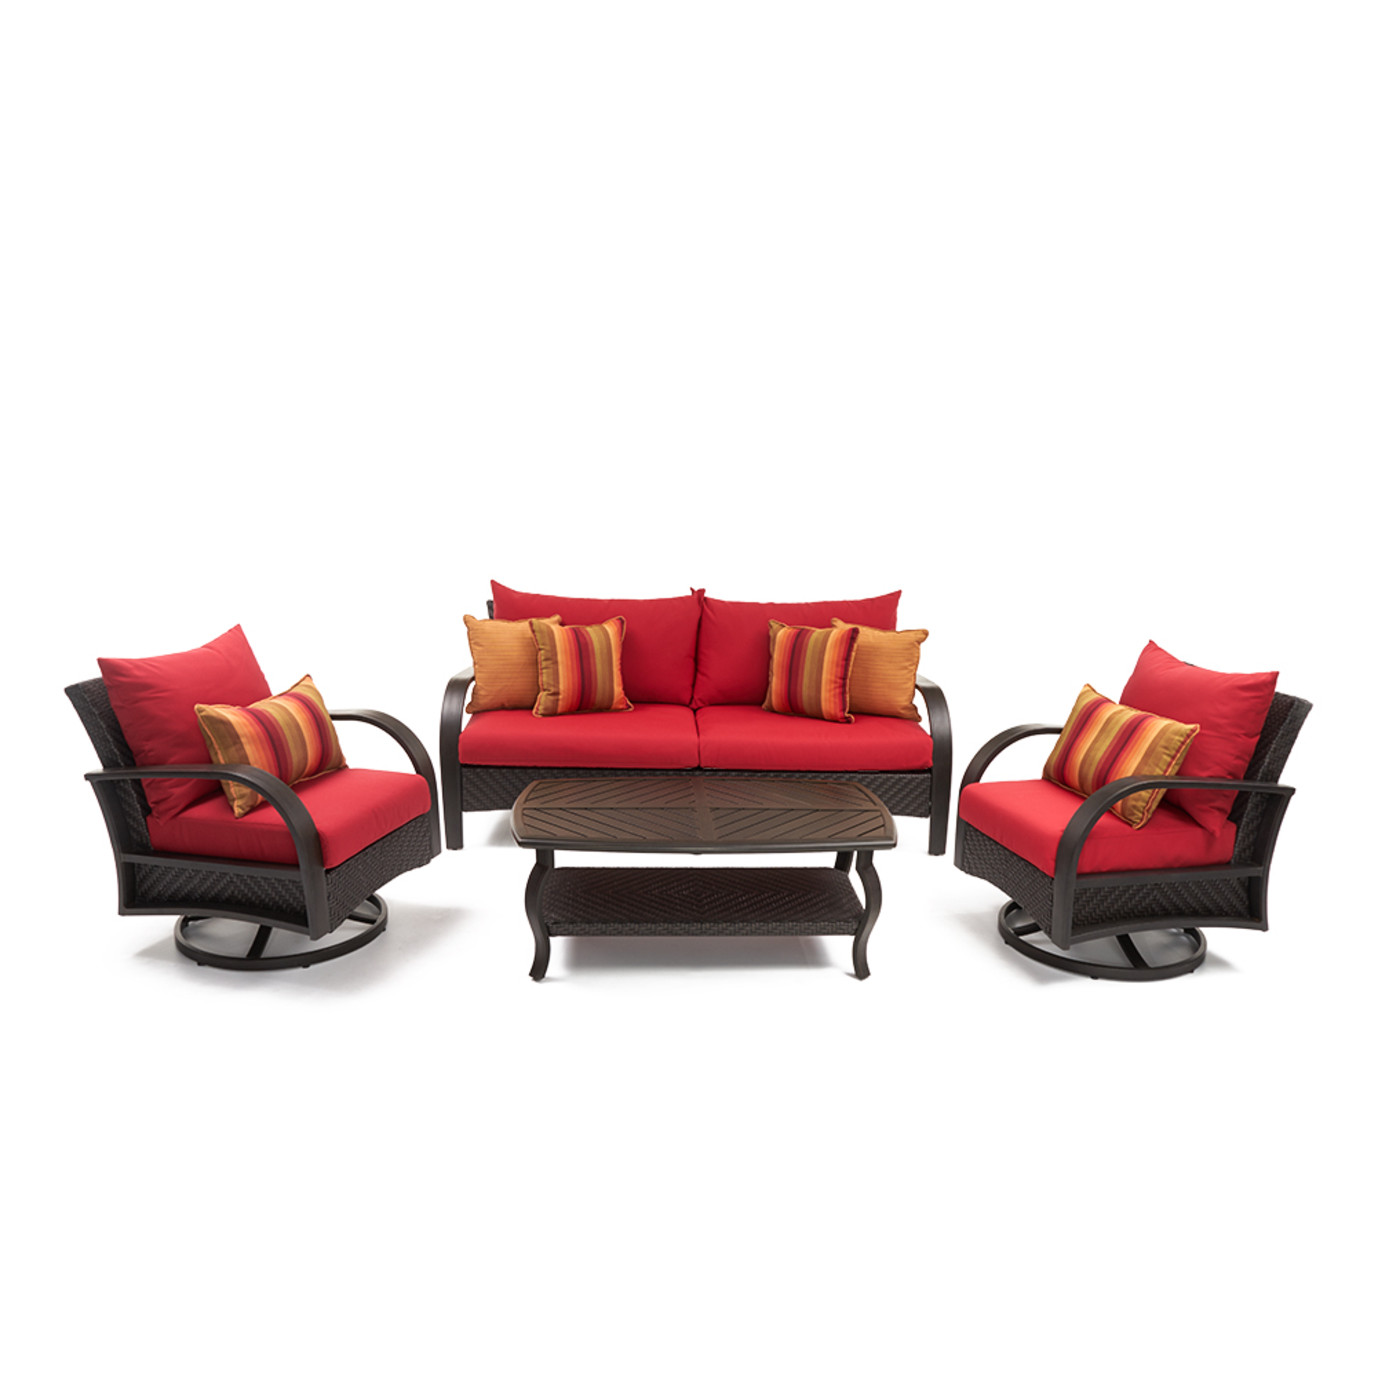 Barcelo™ 4pc Motion Club & Sofa Set - Sunset Red